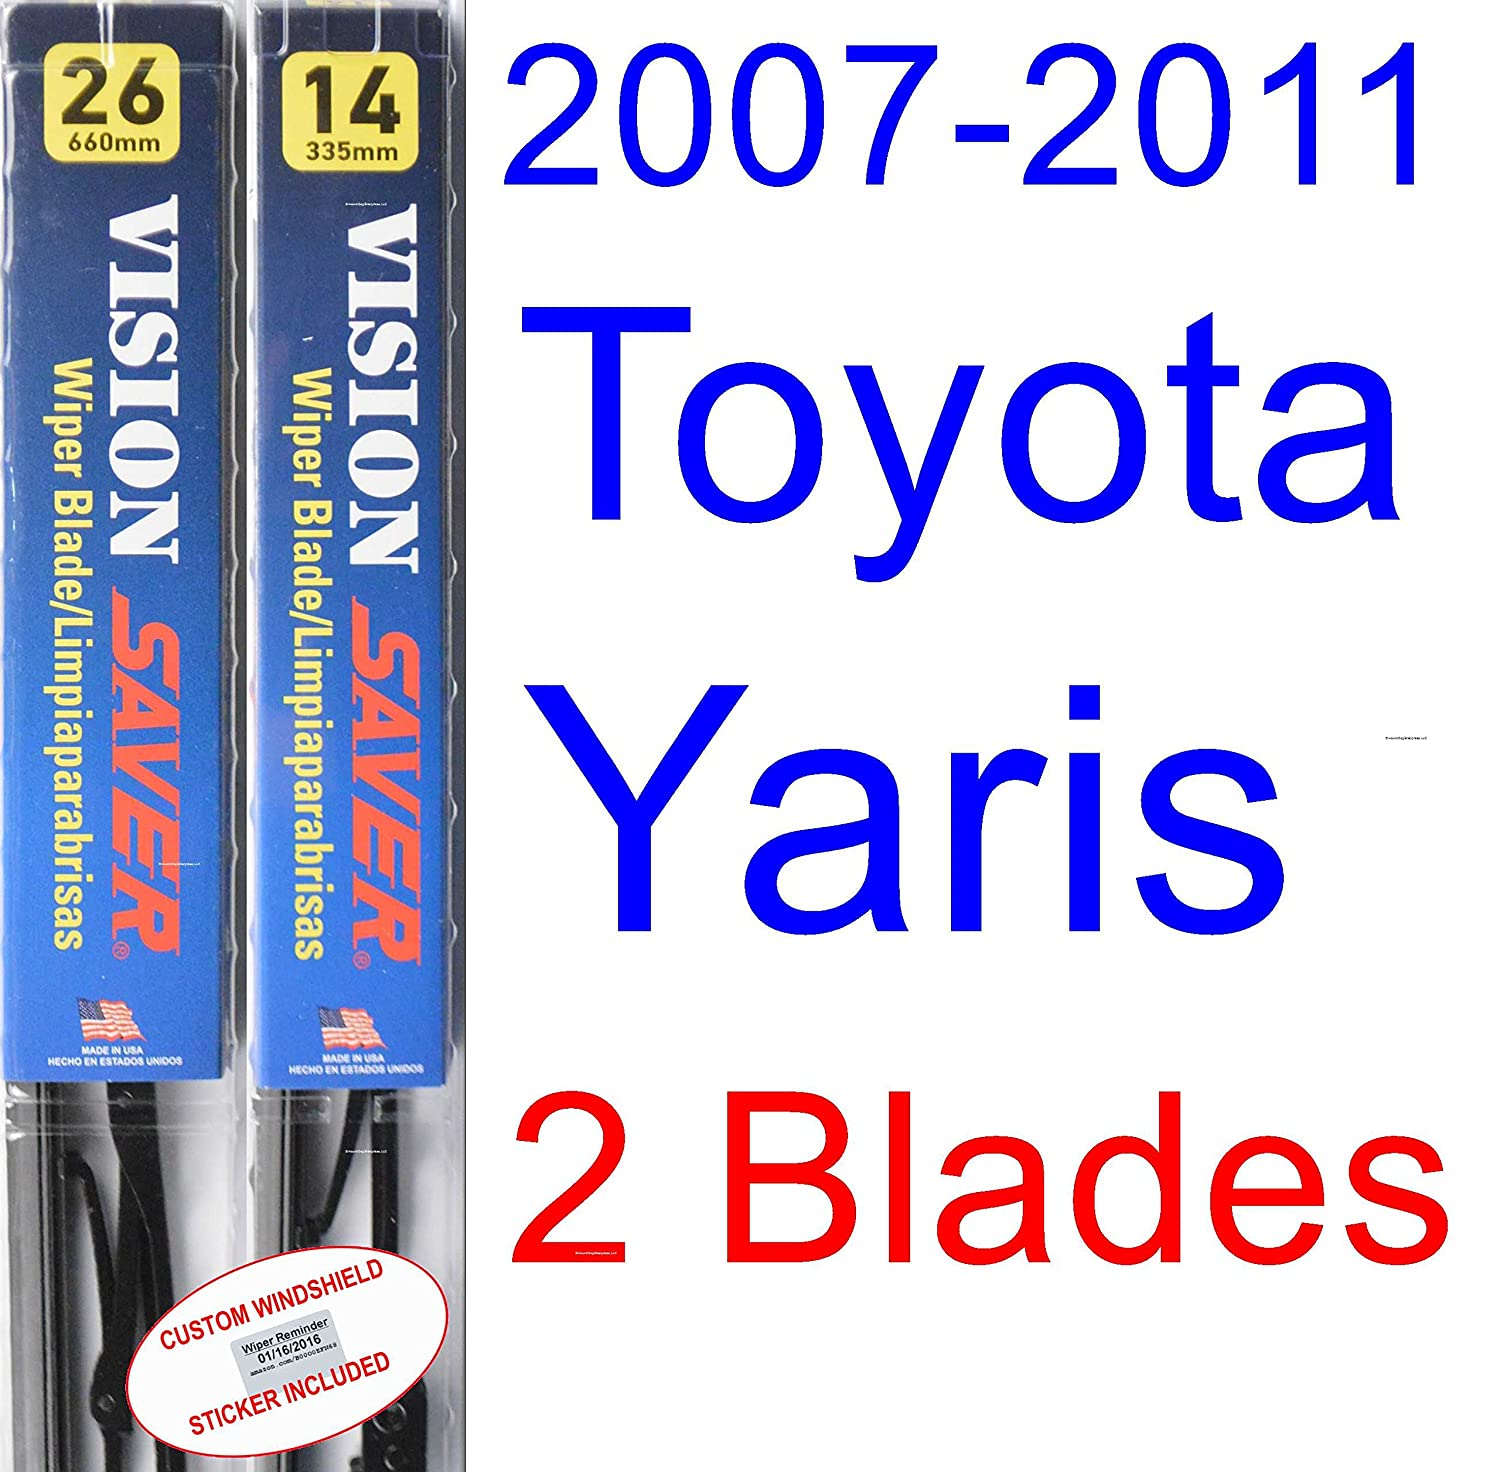 Amazon.com: 2007-2011 Toyota Yaris Replacement Wiper Blade Set/Kit (Set of 2 Blades) (Saver Automotive Products-Vision Saver) (2008,2009,2010): Automotive